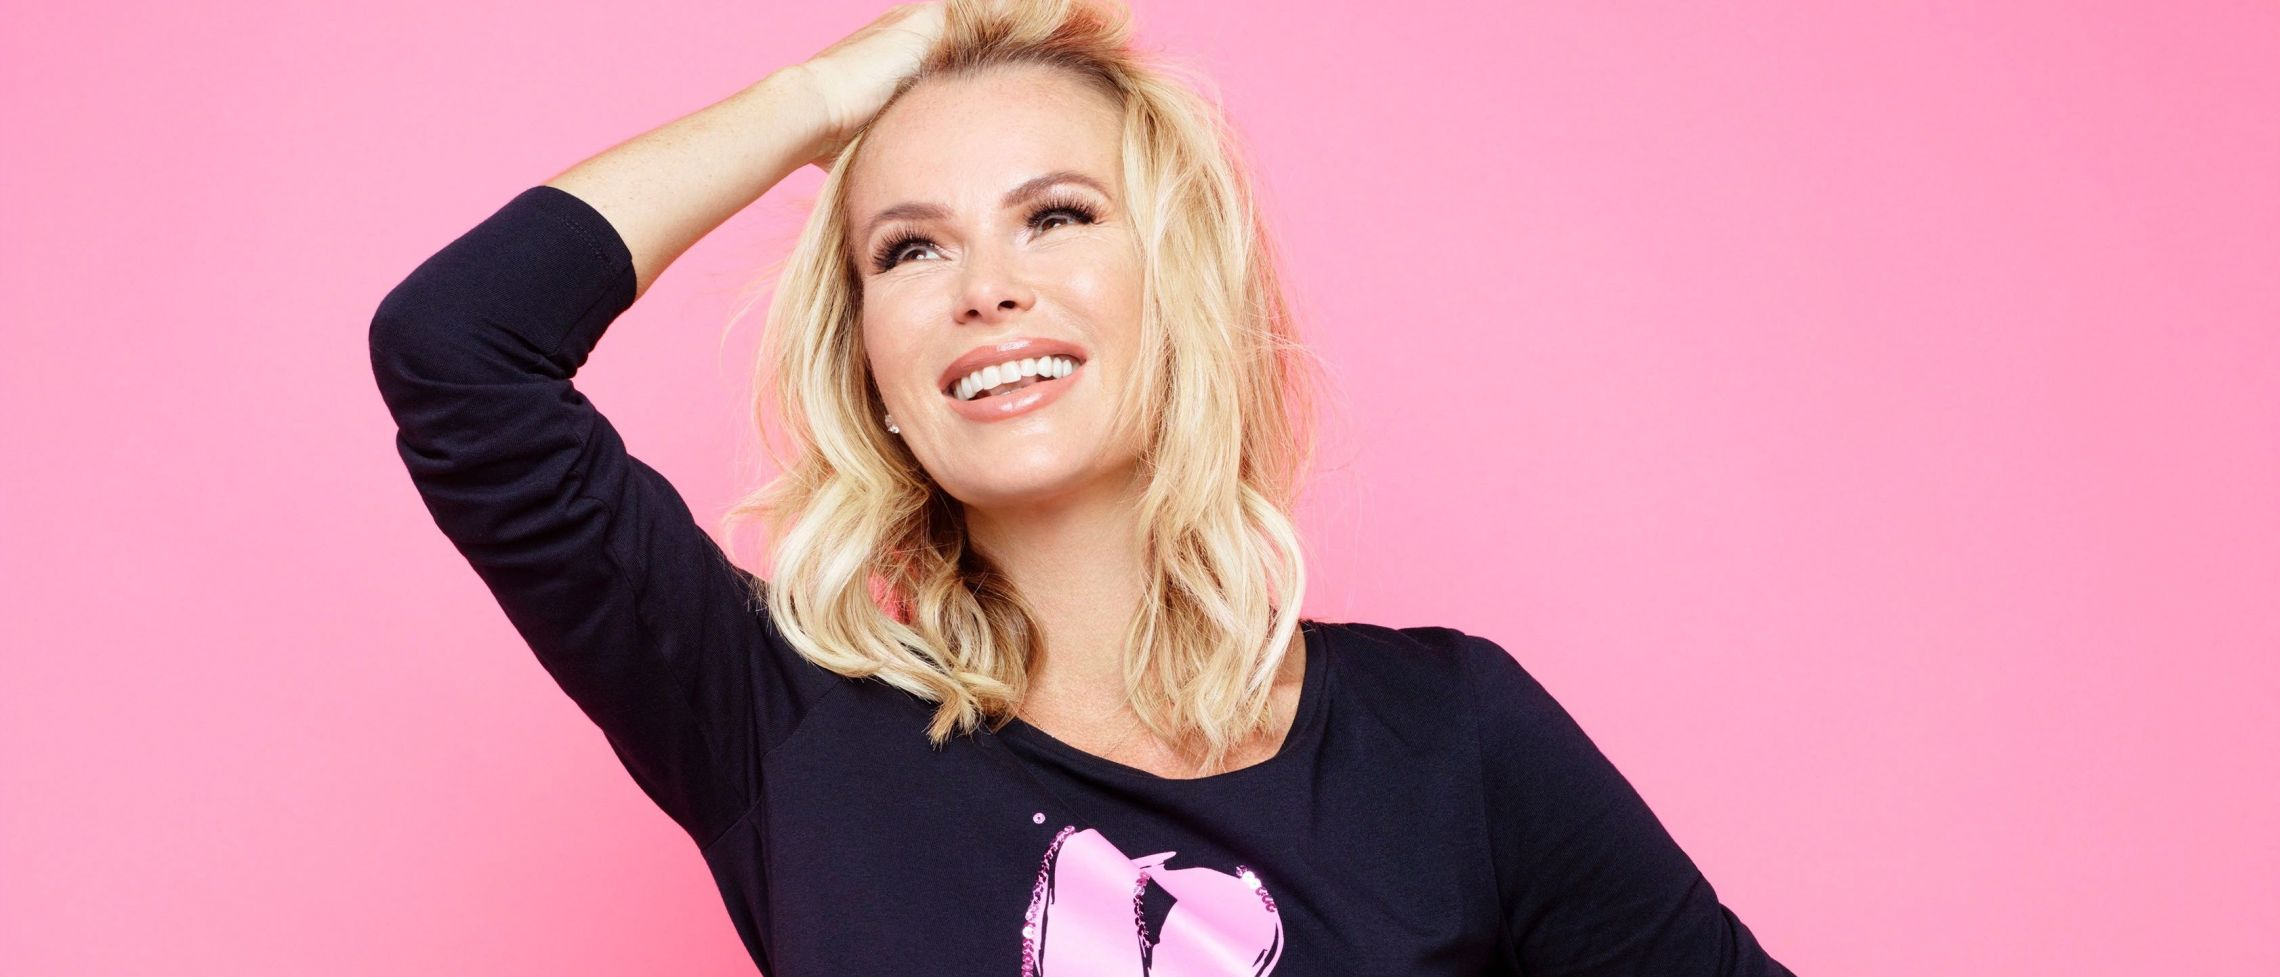 Follow the 'teeth whitening' footsteps of Amanda Holden